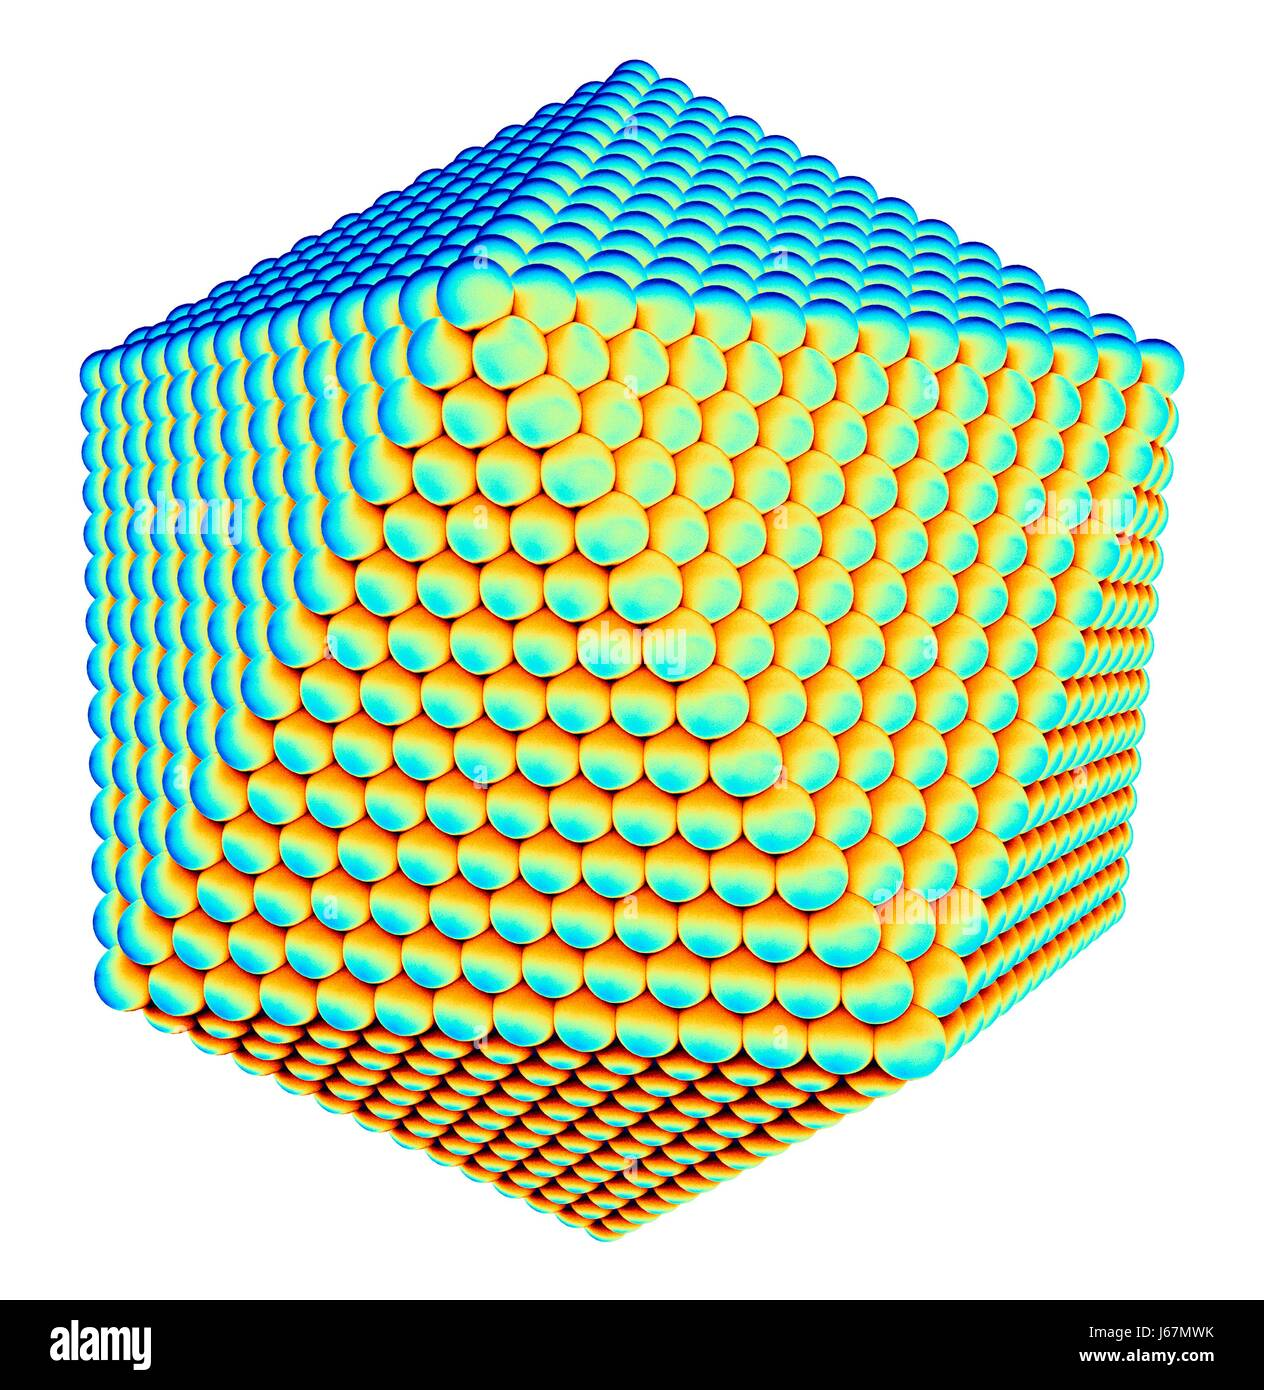 Computer artwork of an icosahedral virus capsid. The capsid is the protein shell of the virus and encloses it's - Stock-Bilder